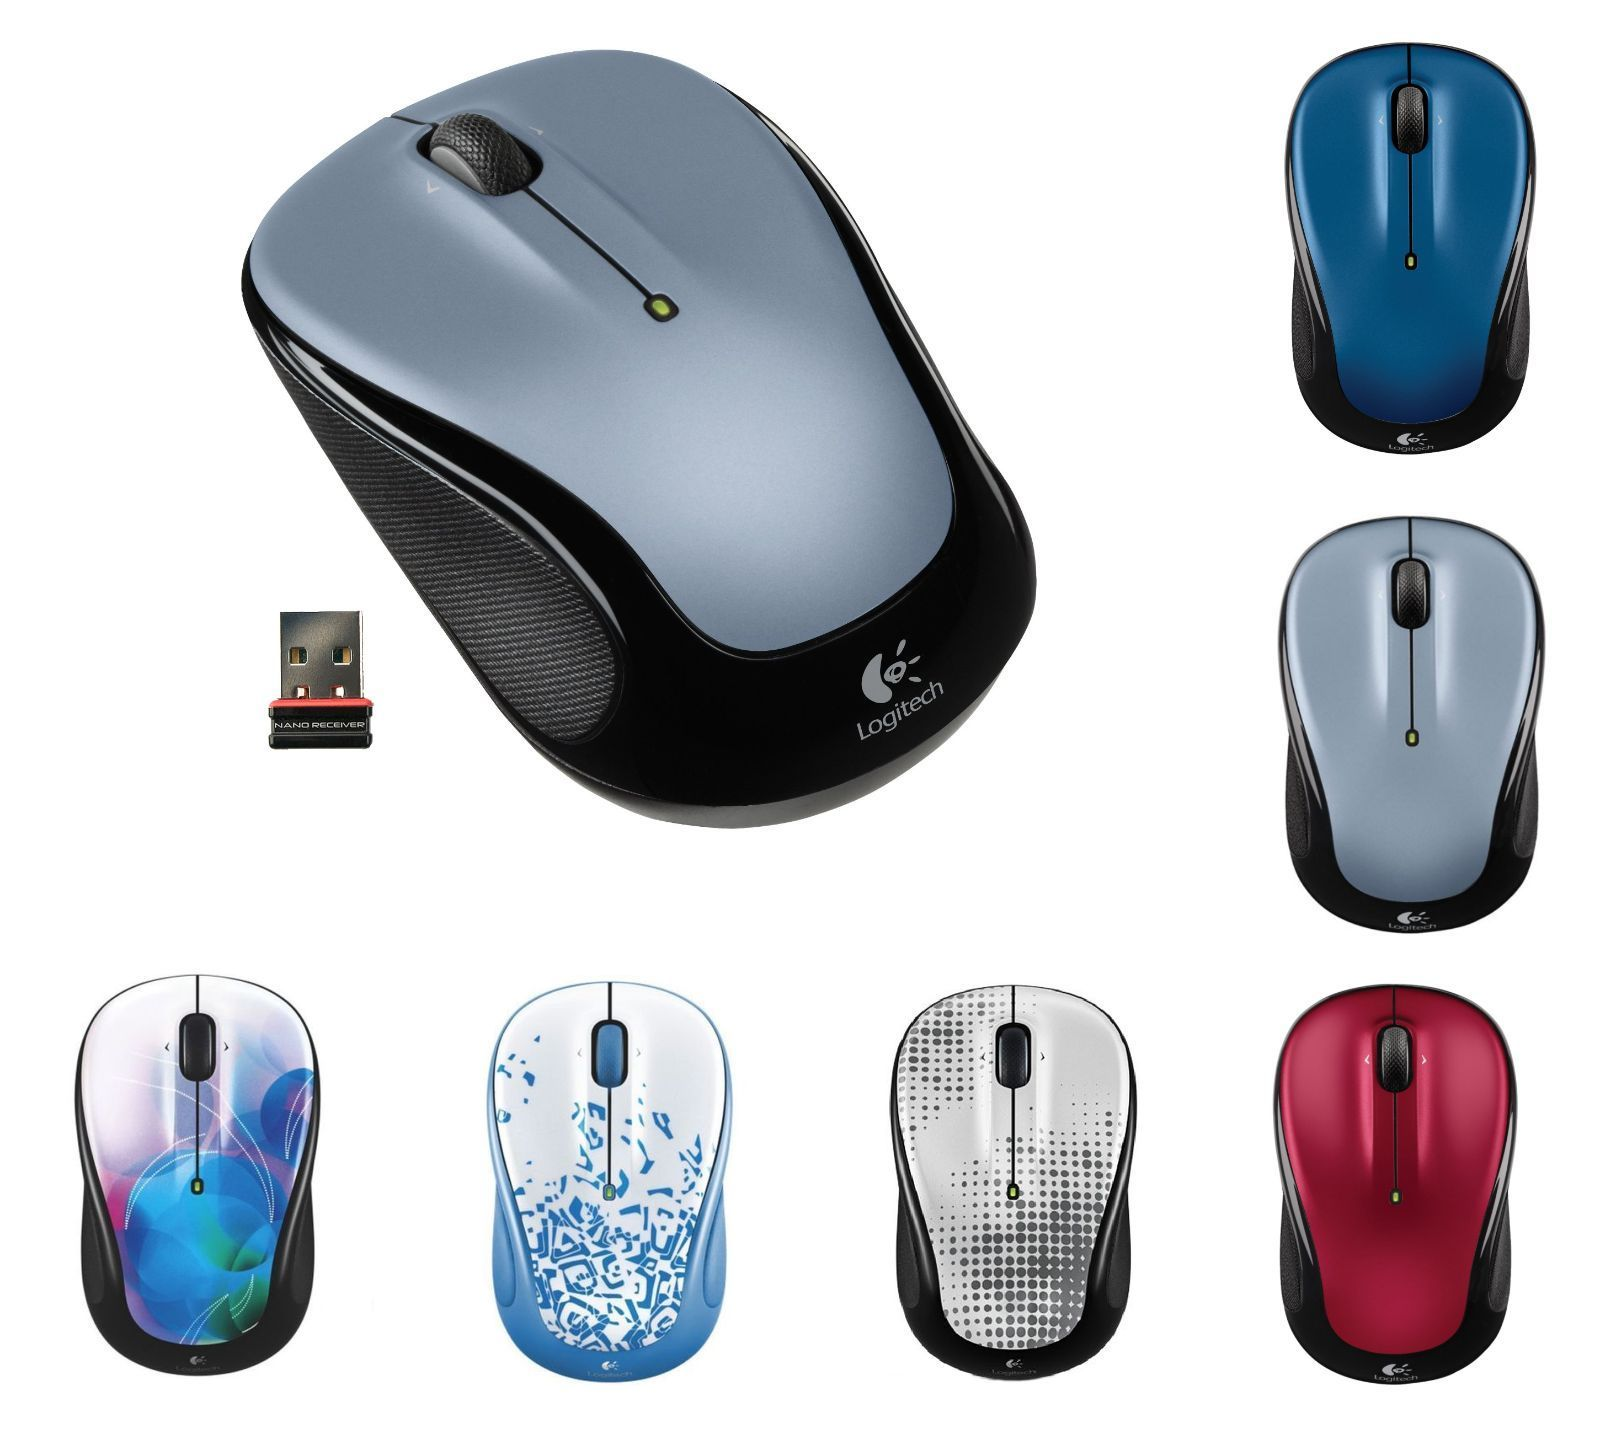 Details about Logitech M325 Wireless Mouse for PC Mac